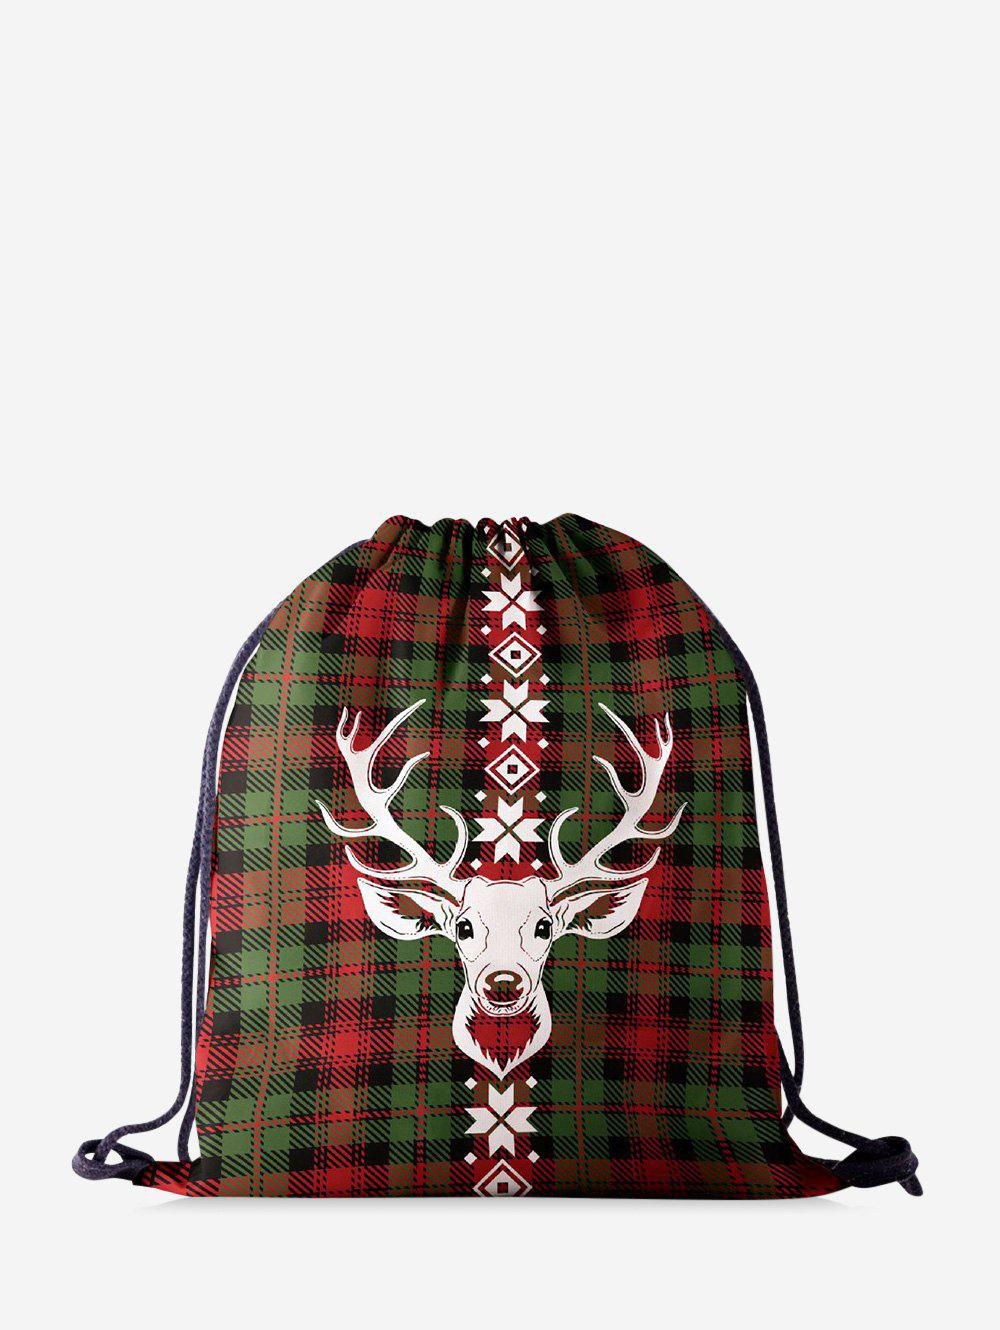 Christmas Plaid Elk Digital Printing Cinch Bag - DARK FOREST GREEN